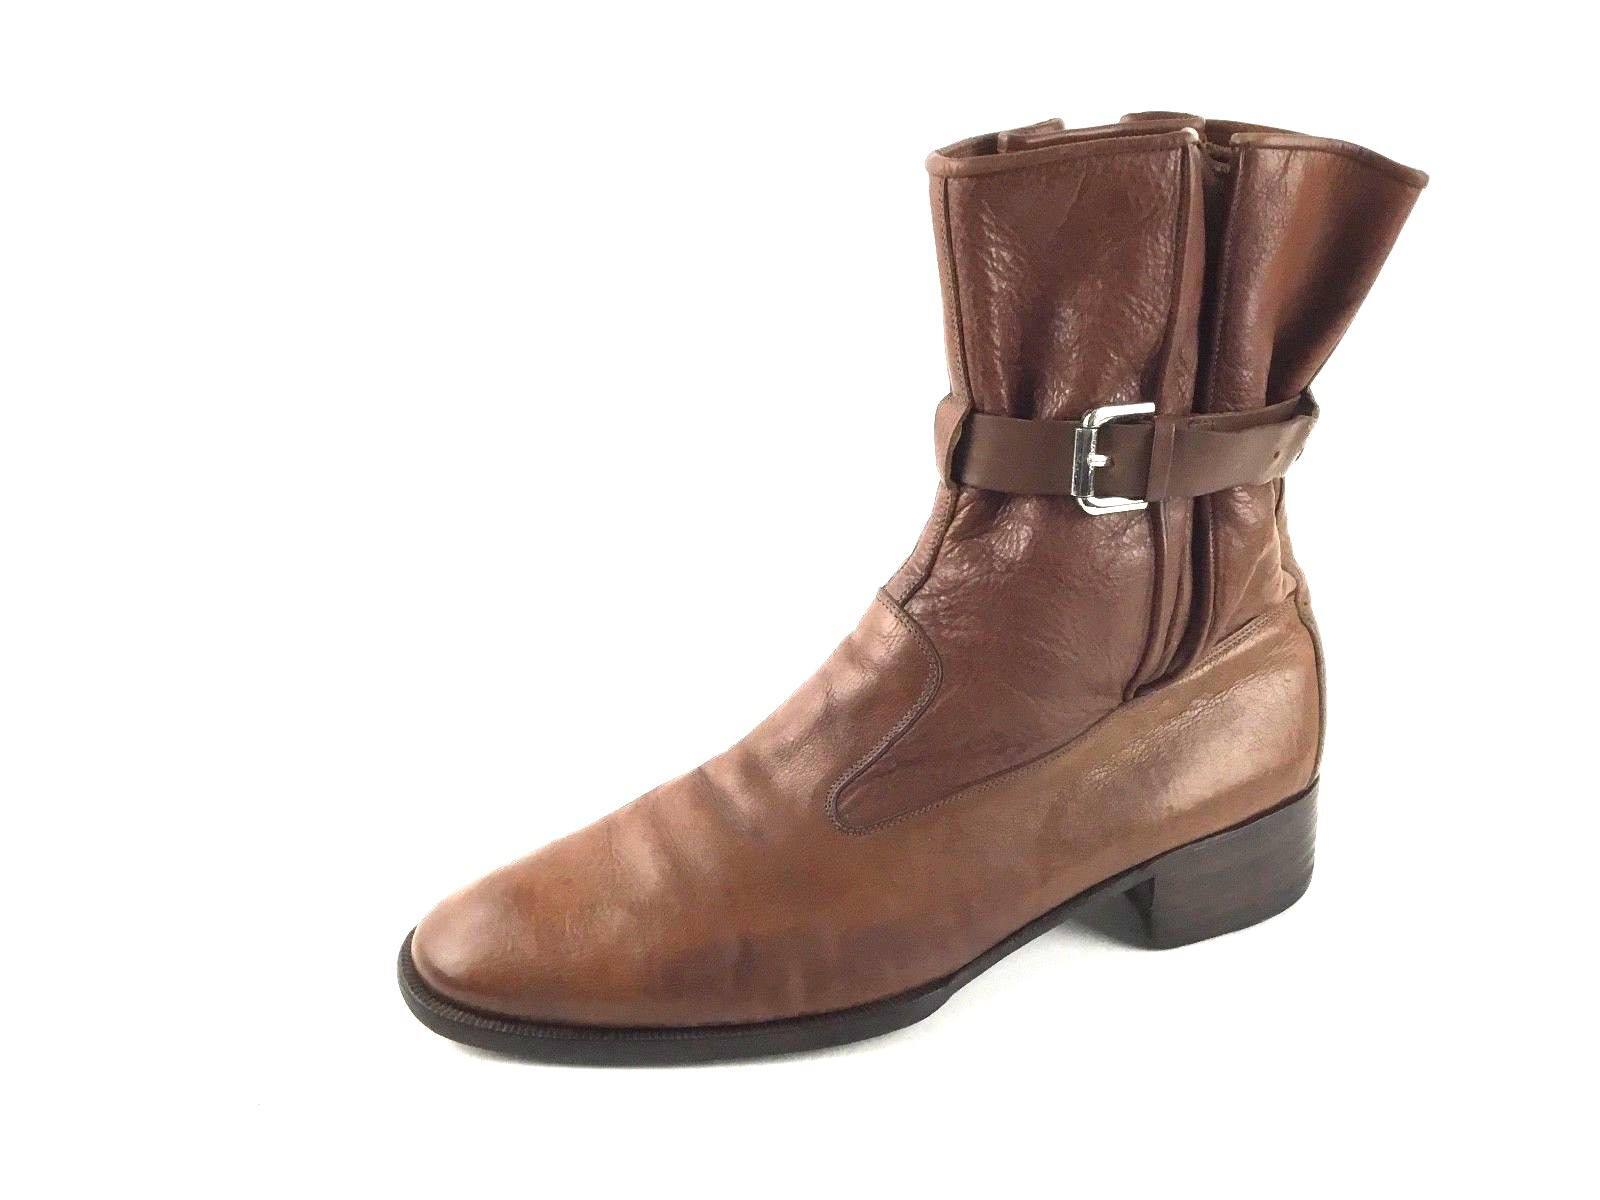 Antico Malacca Vintage Men's  Boots Brown Size US.10.5 UK.10 EU.43